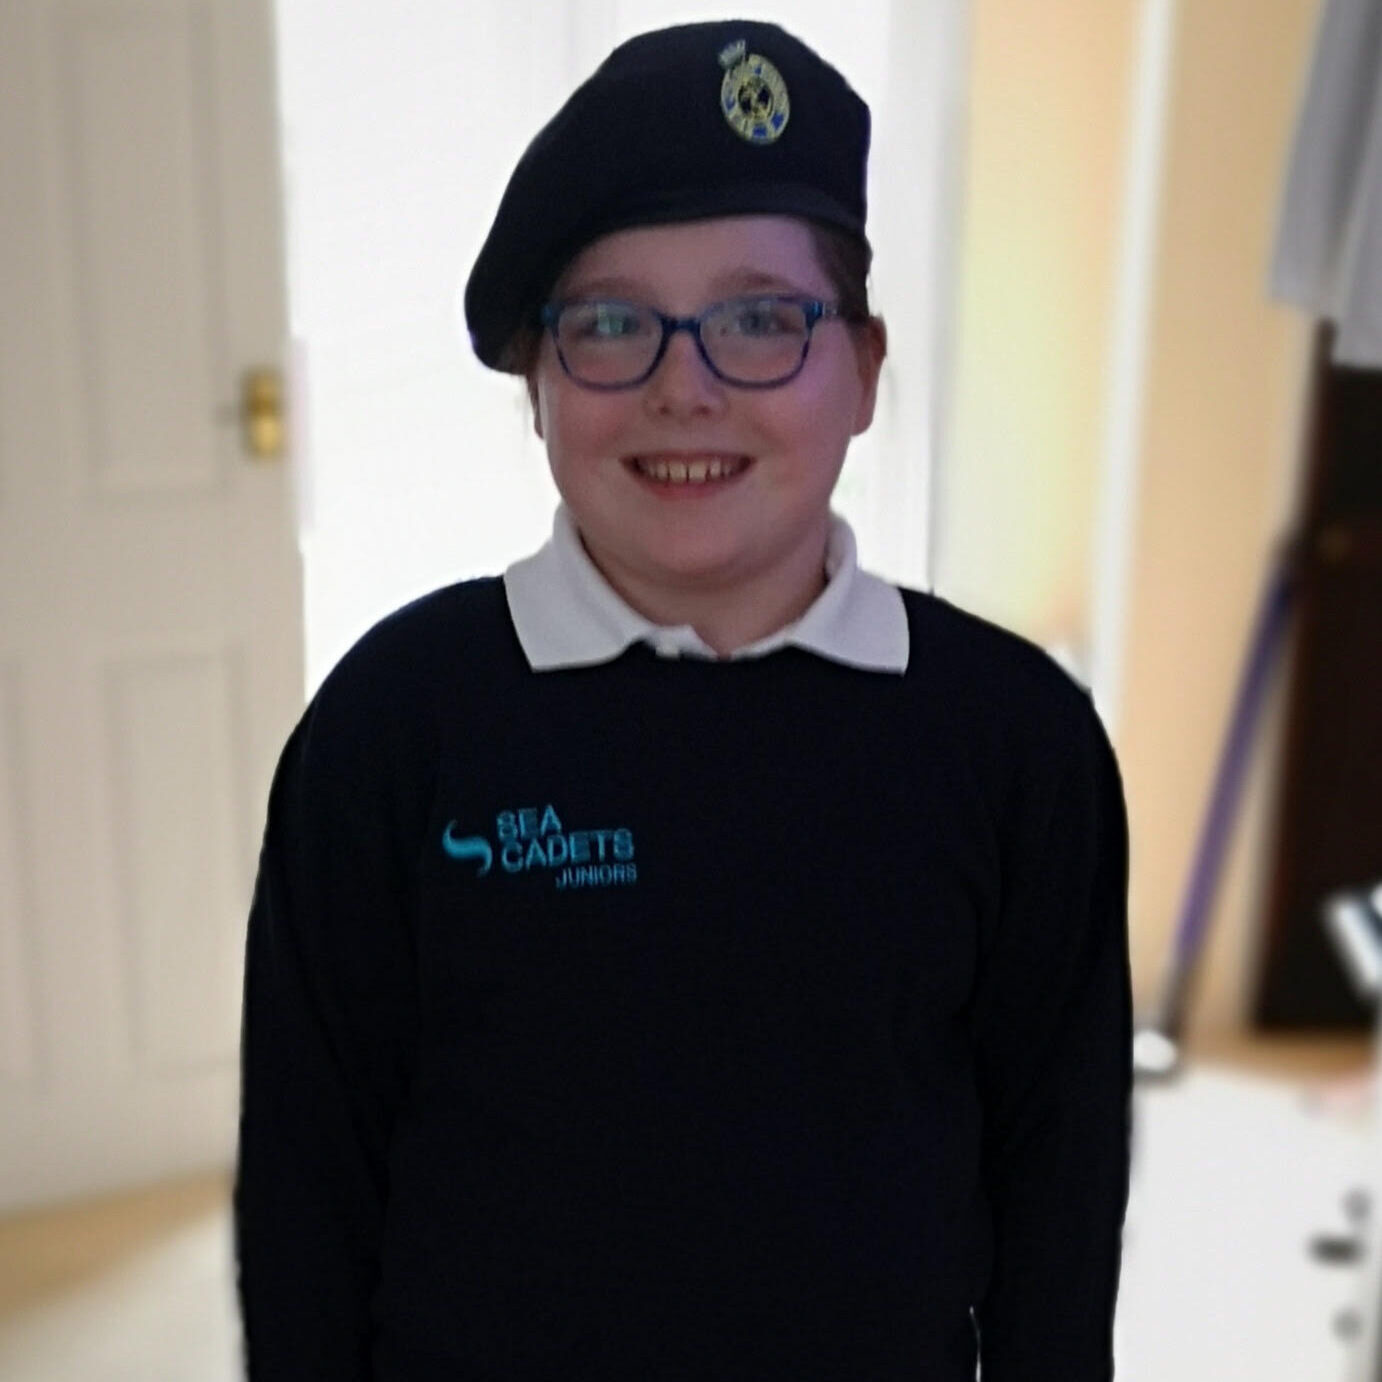 Eleanor is wearing her sea cadet uniform and smiling at the camera.